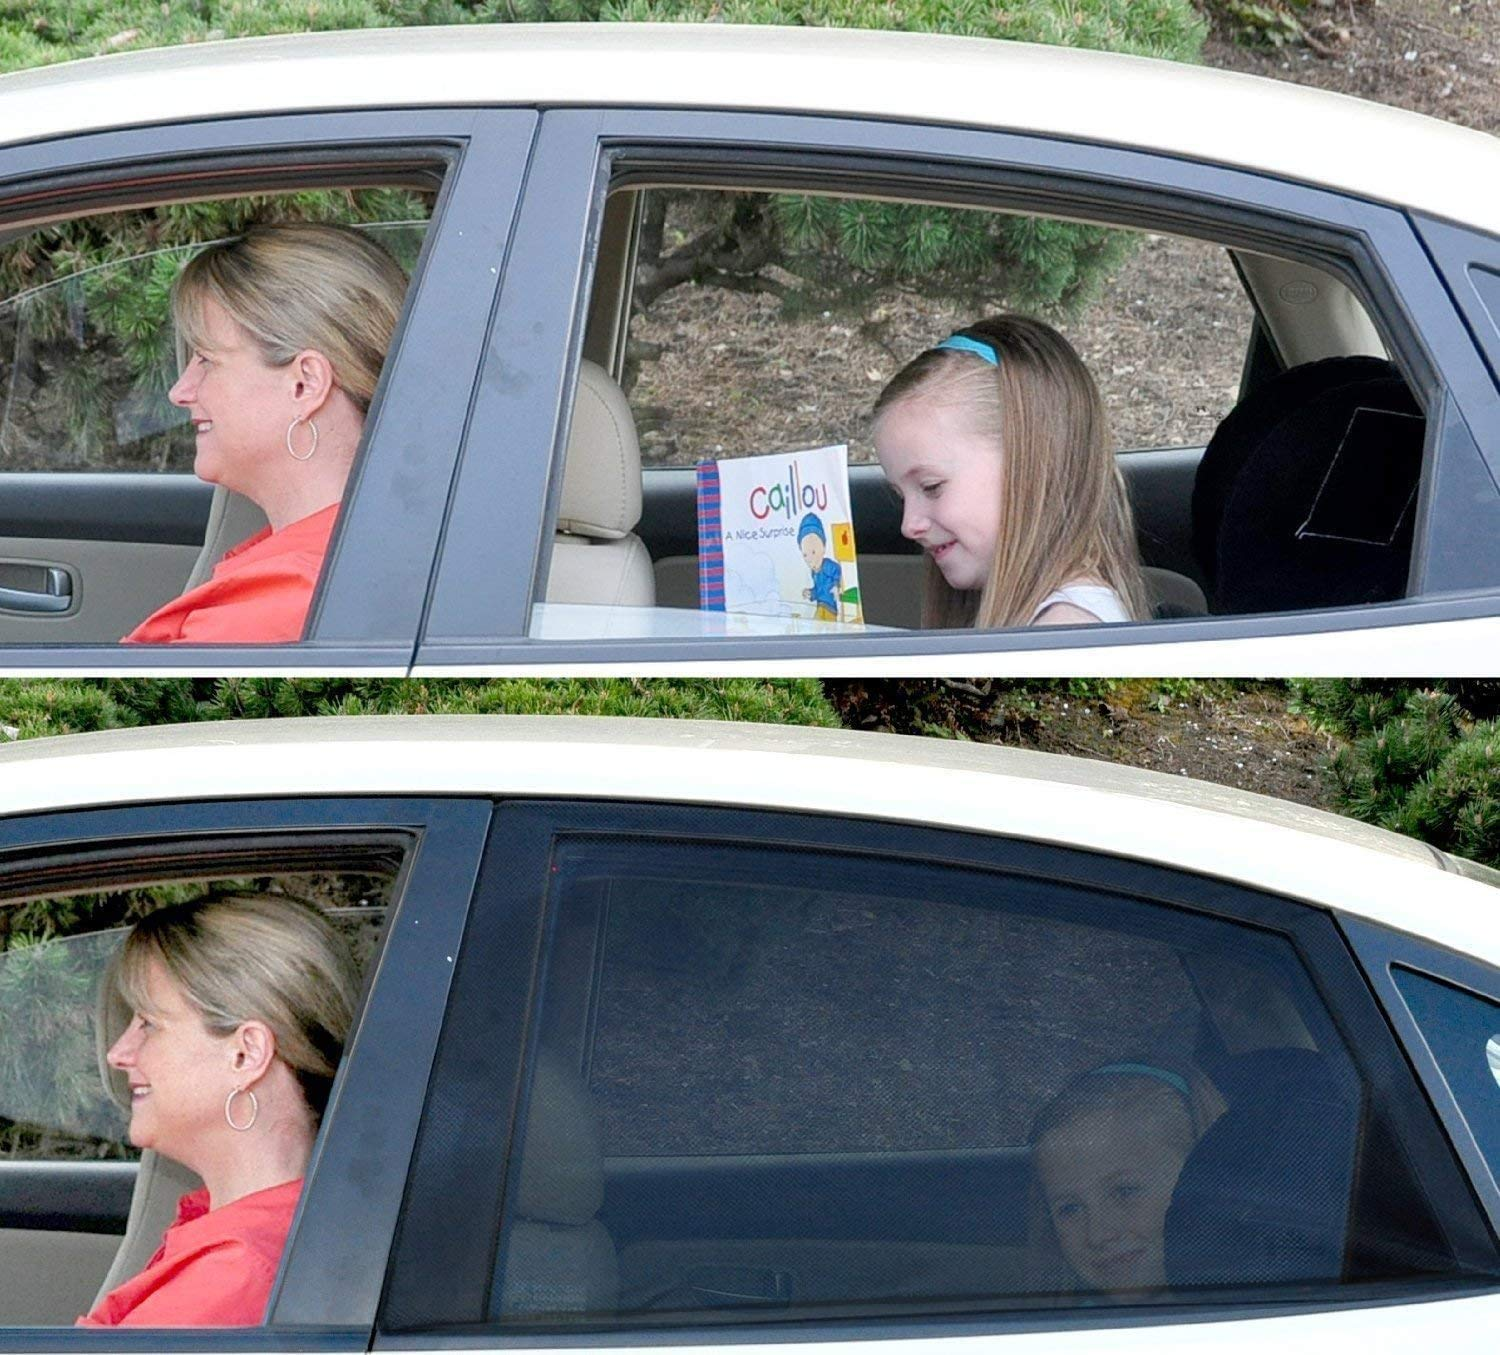 Universal Car Window Shade Breathable Sun Shades Mesh Shield Protects the Old//Toddler//Kids//Pets from Sun Burn Keeps Cooler Screen for Baby Sleeping